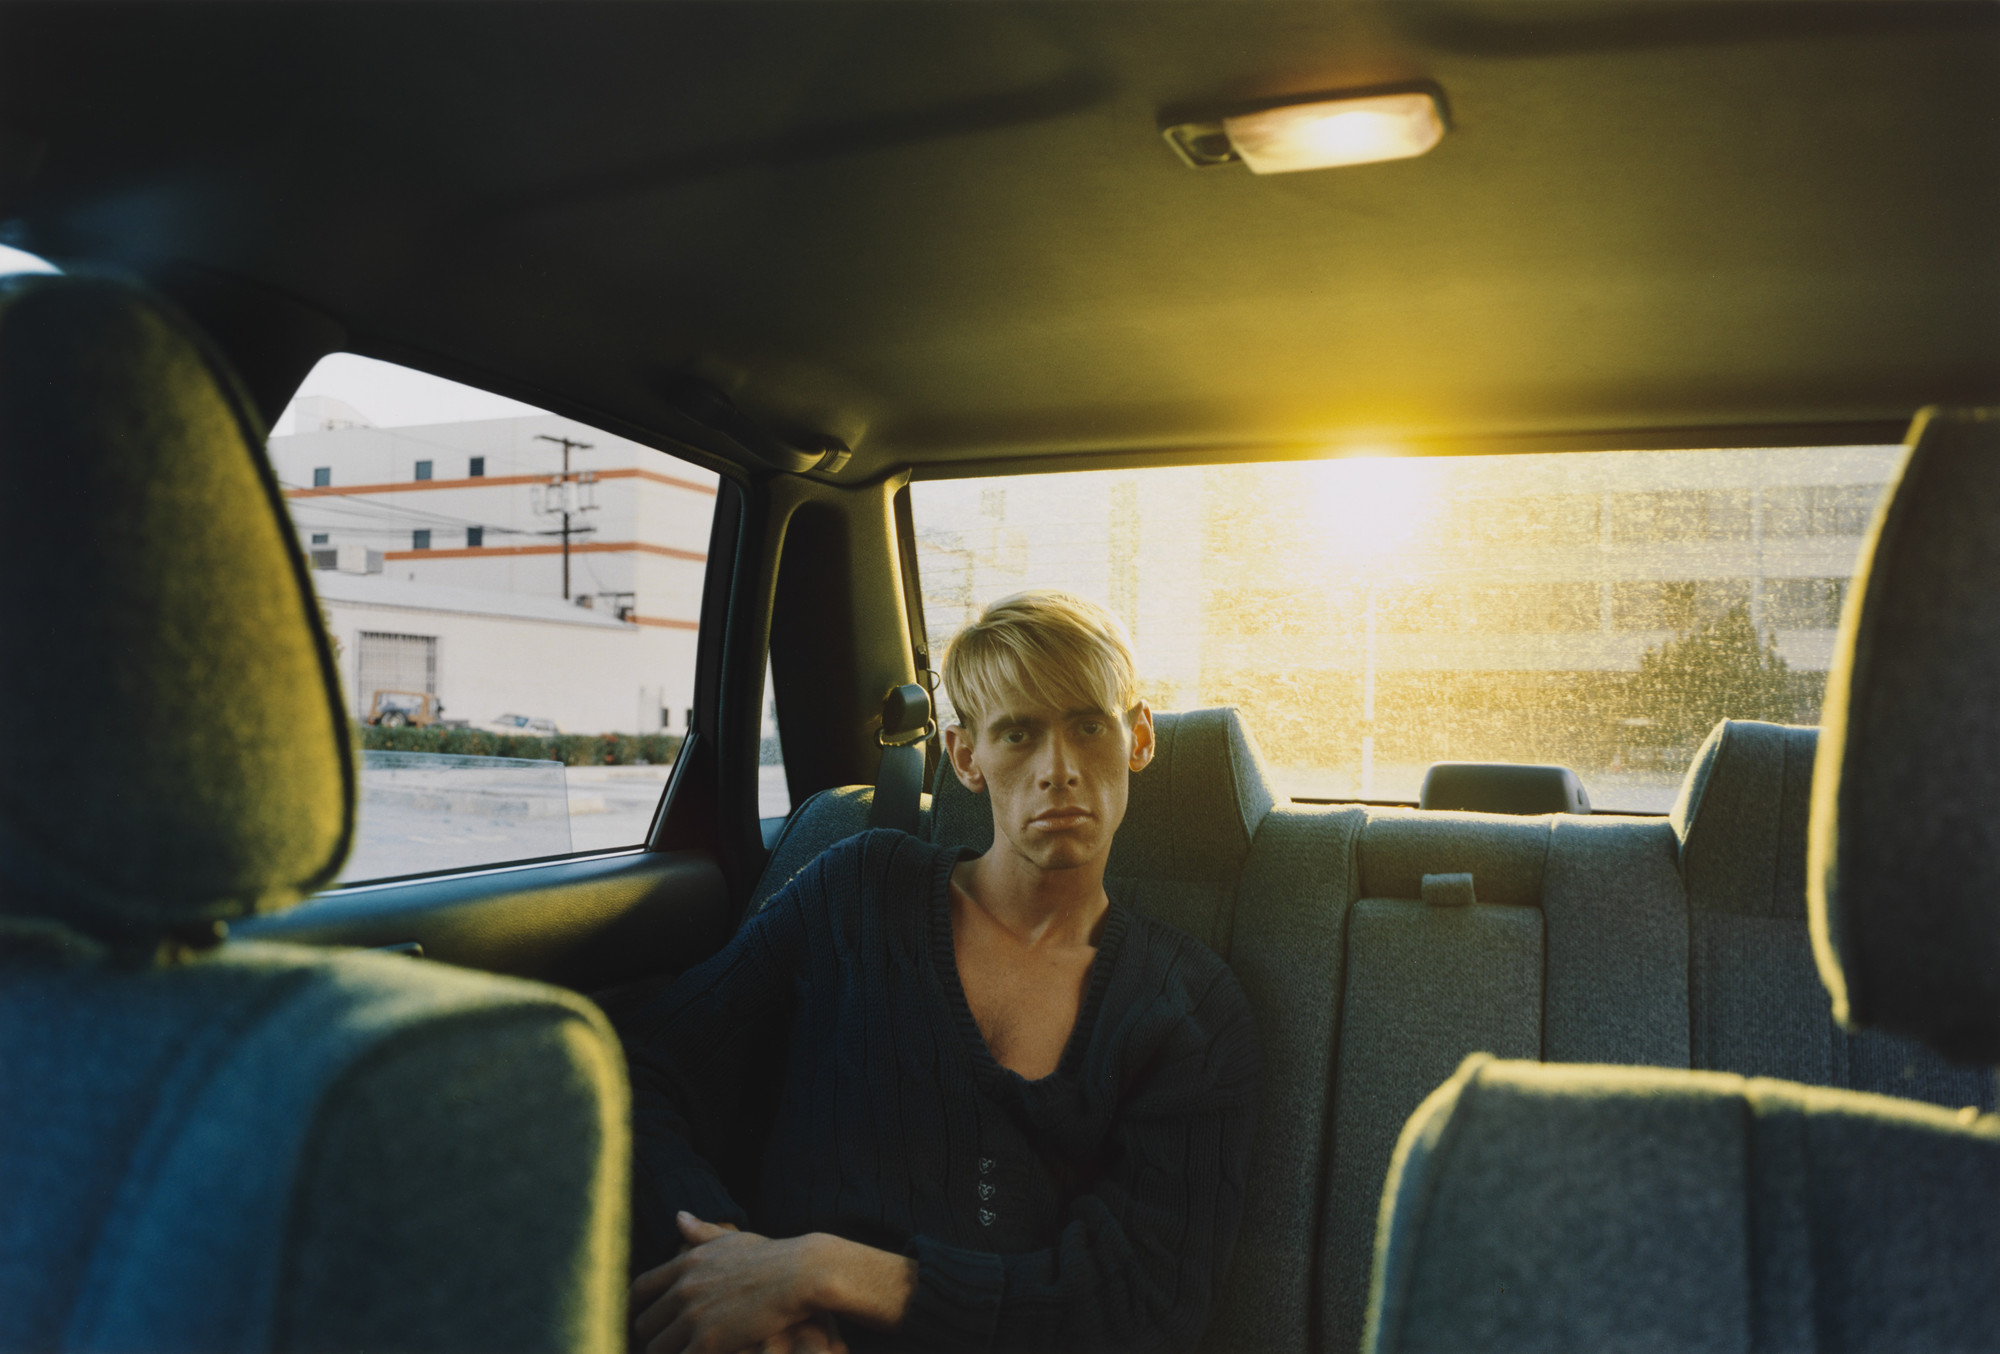 Philip-Lorca diCorcia. Todd M. Brooks; 22 Years Old; Denver, Colorado; $40. 1990-92